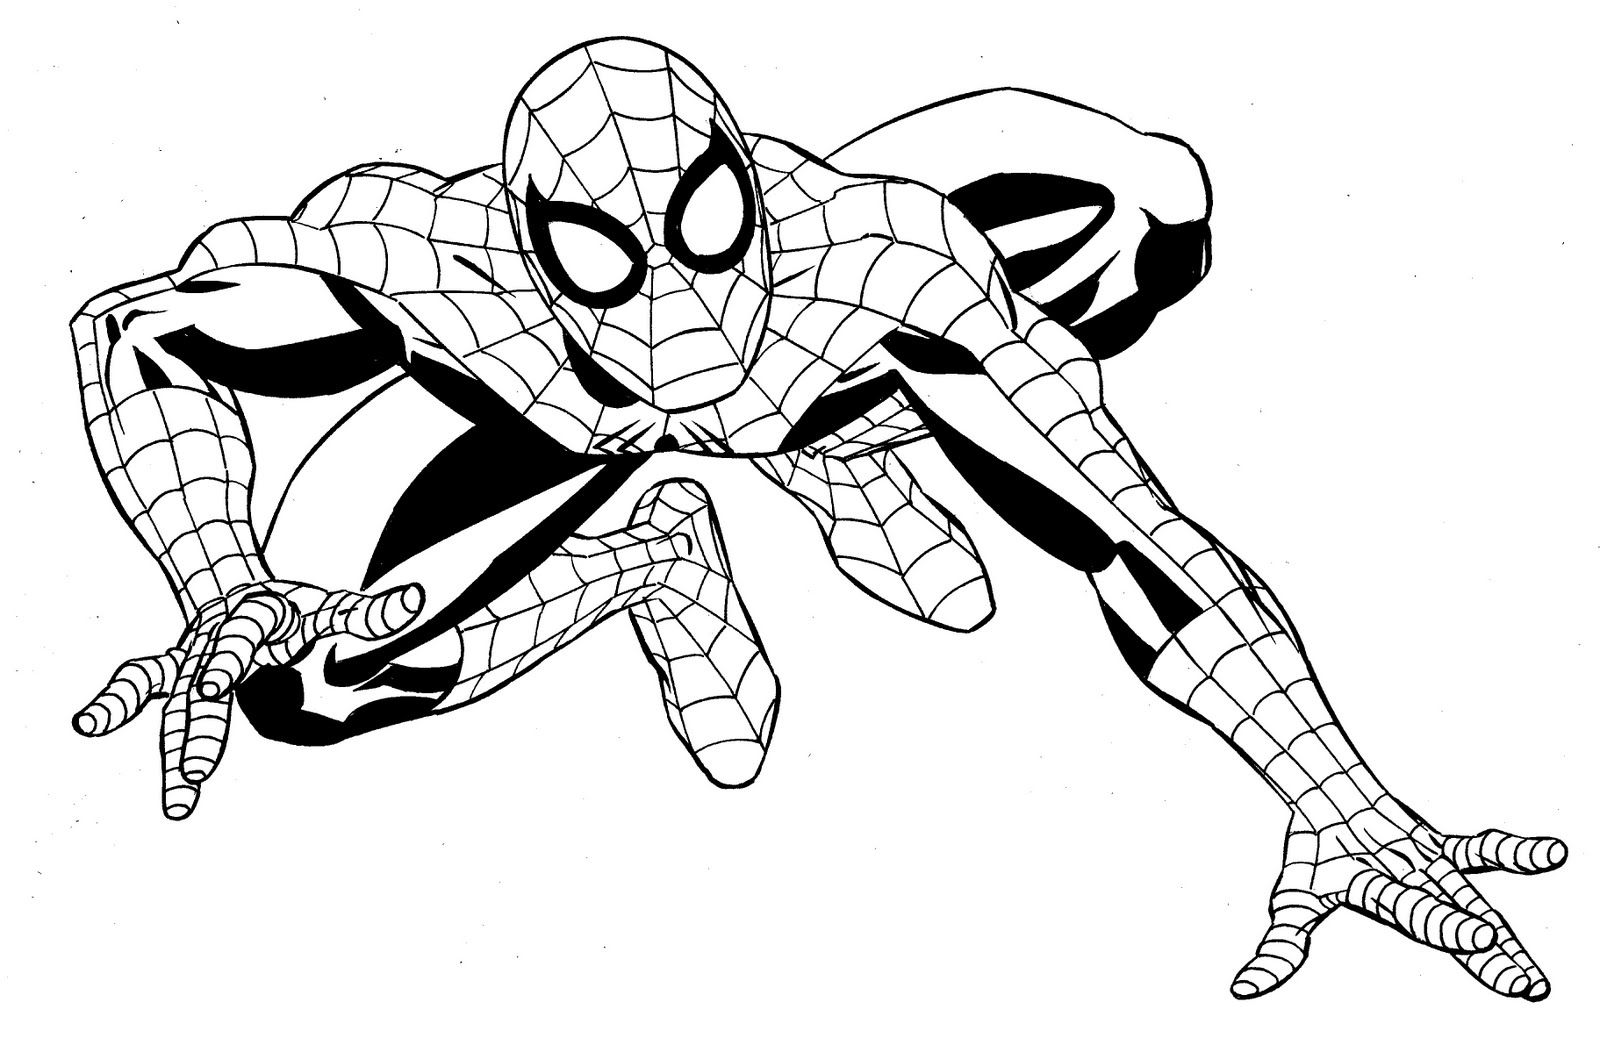 Superheroes coloring pages marvel superheroes coloring for Marvel superheroes coloring pages